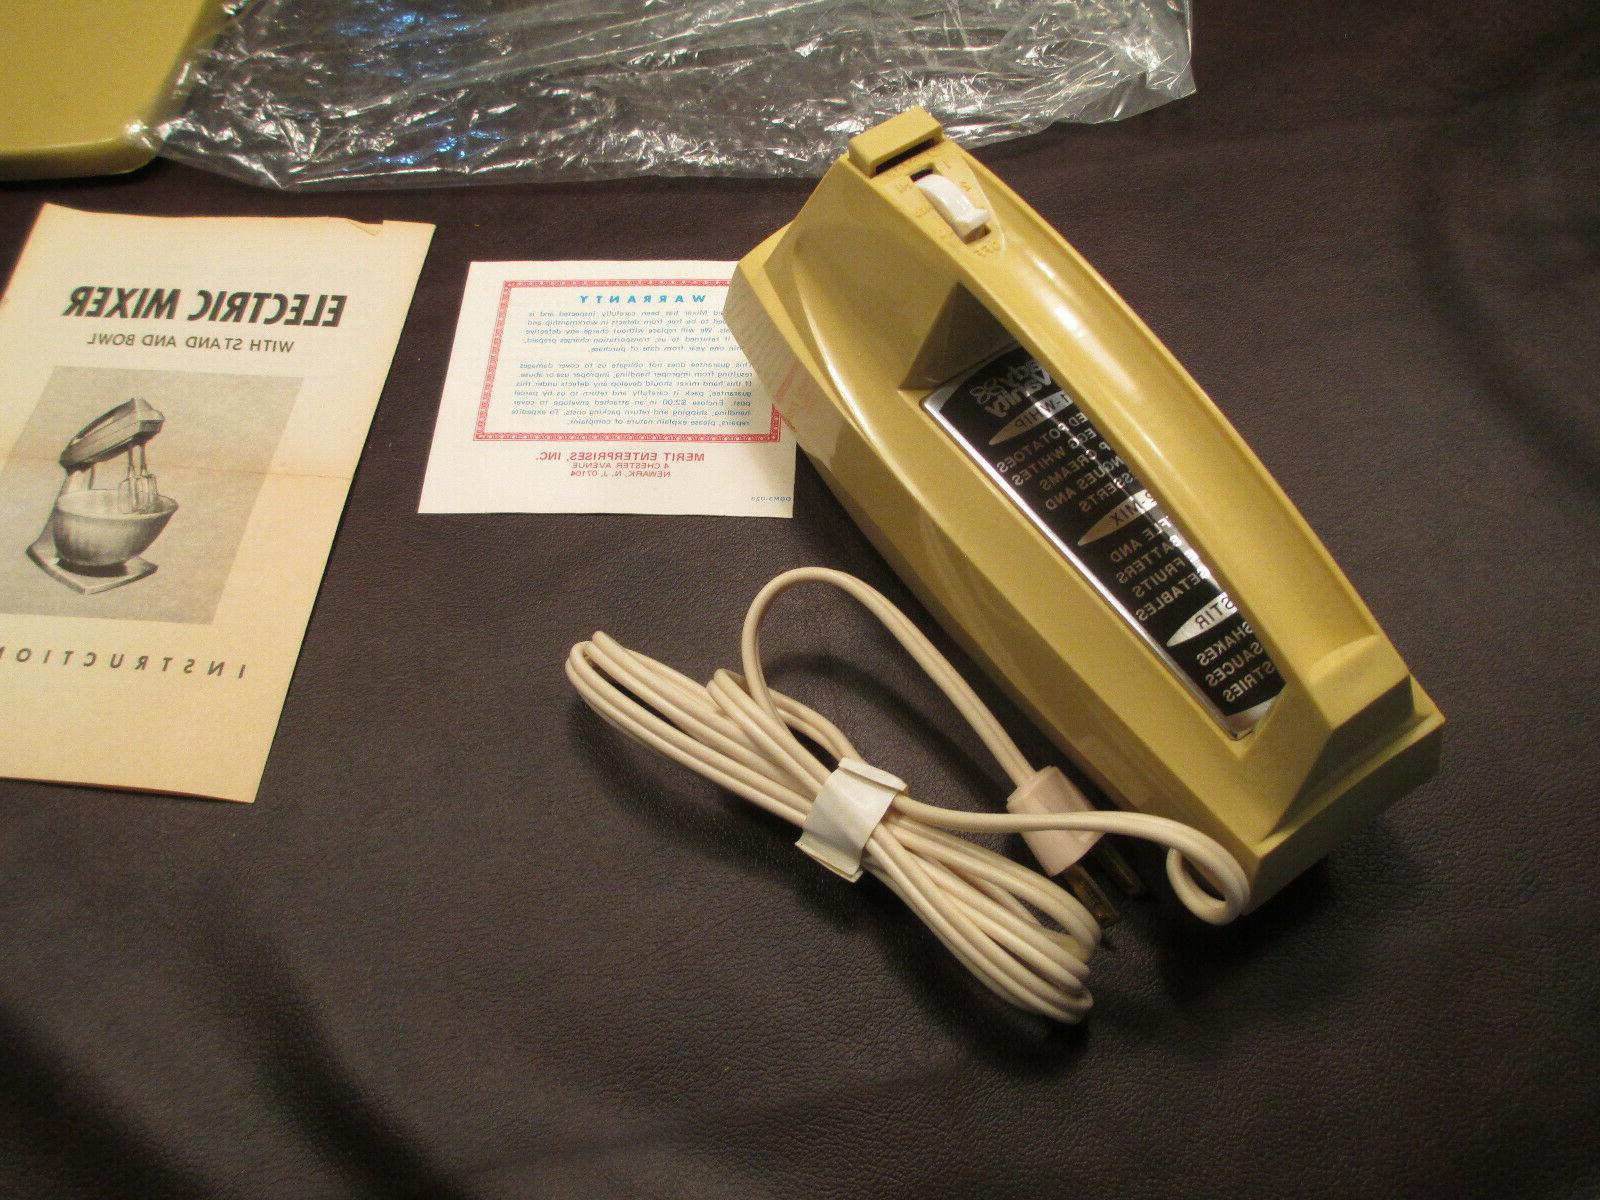 VINTAGE LADY ELECTRIC HELD MIXER AND